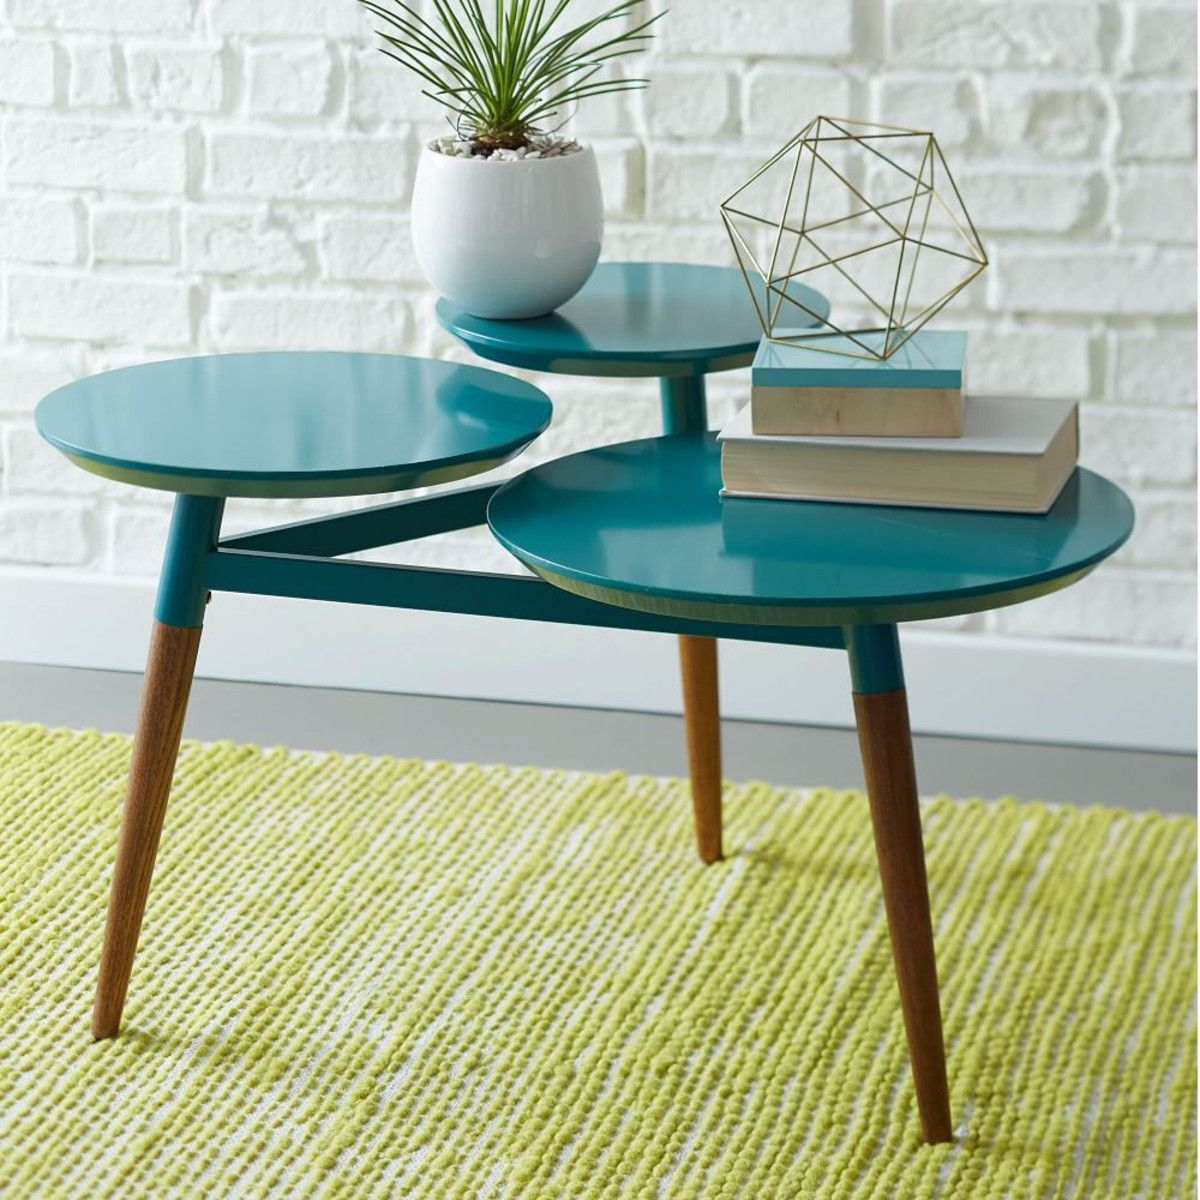 Colorful Sidetable Side Table Design Uniquesidetable Modern